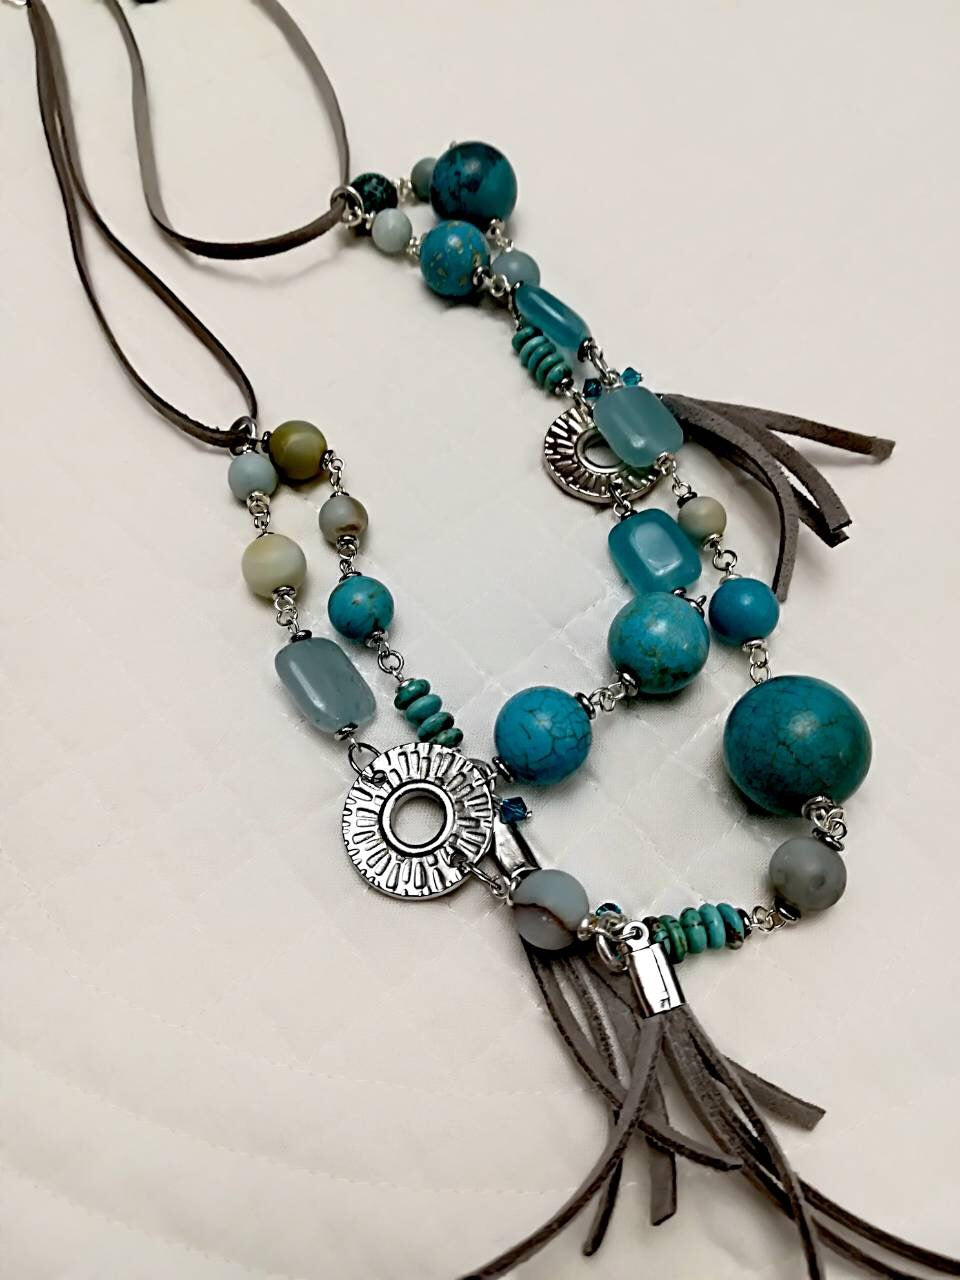 Hand Made Necklaces with turquoise and Venetian glass